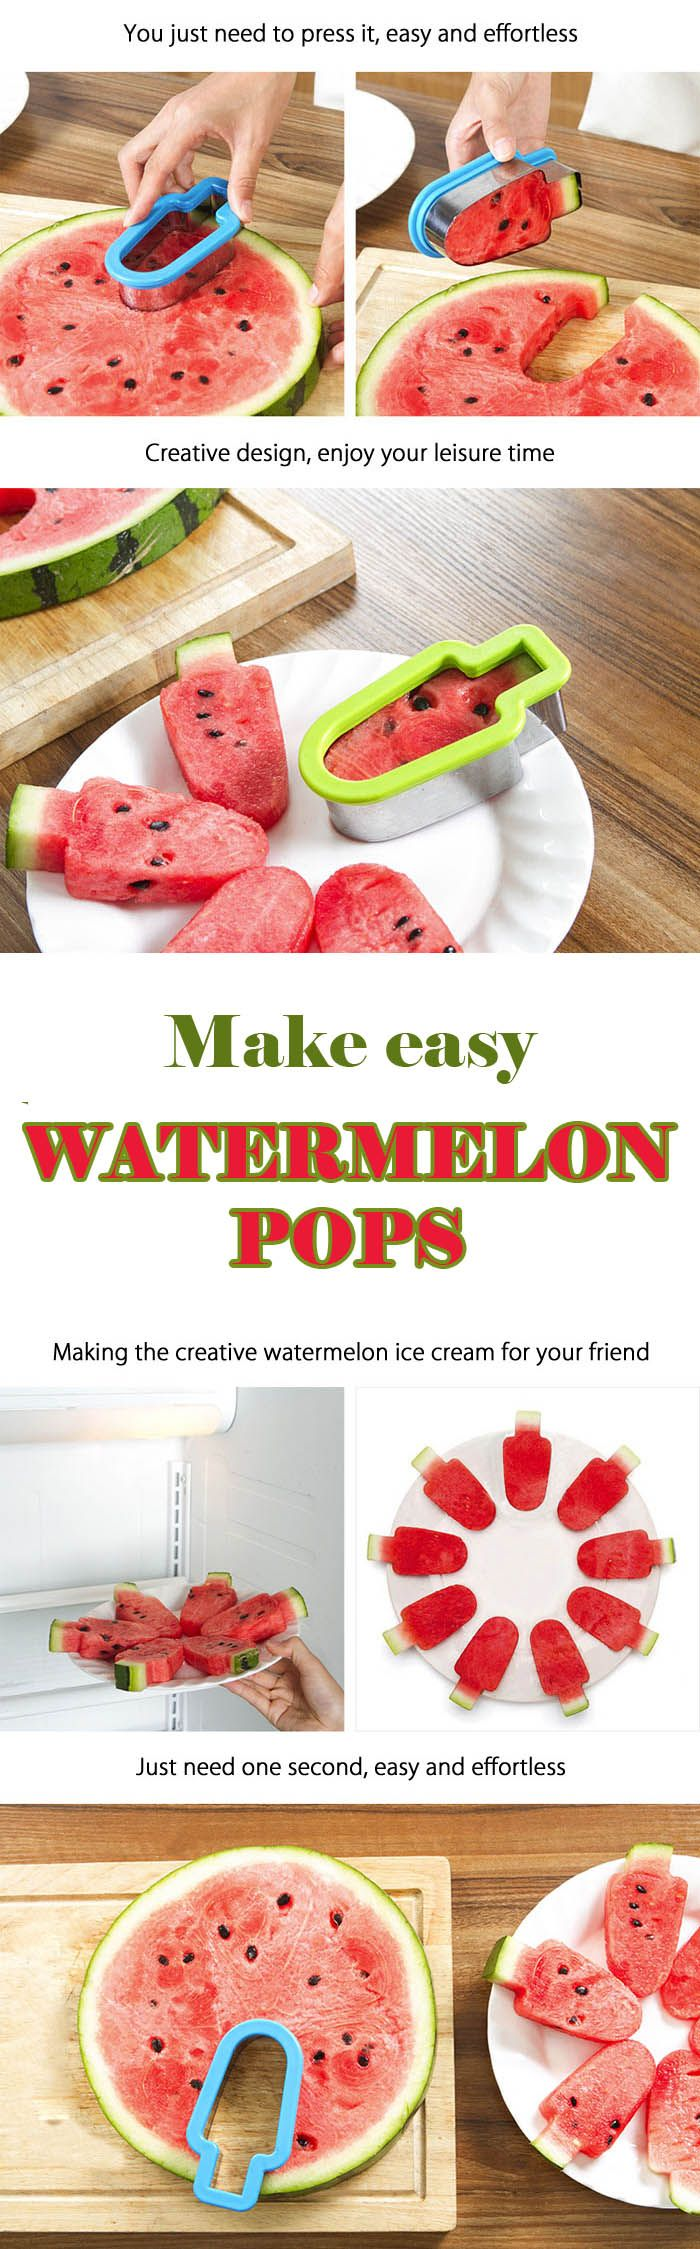 Multifunctional Watermelon Slicer - Kitchen Gadget for Fruit